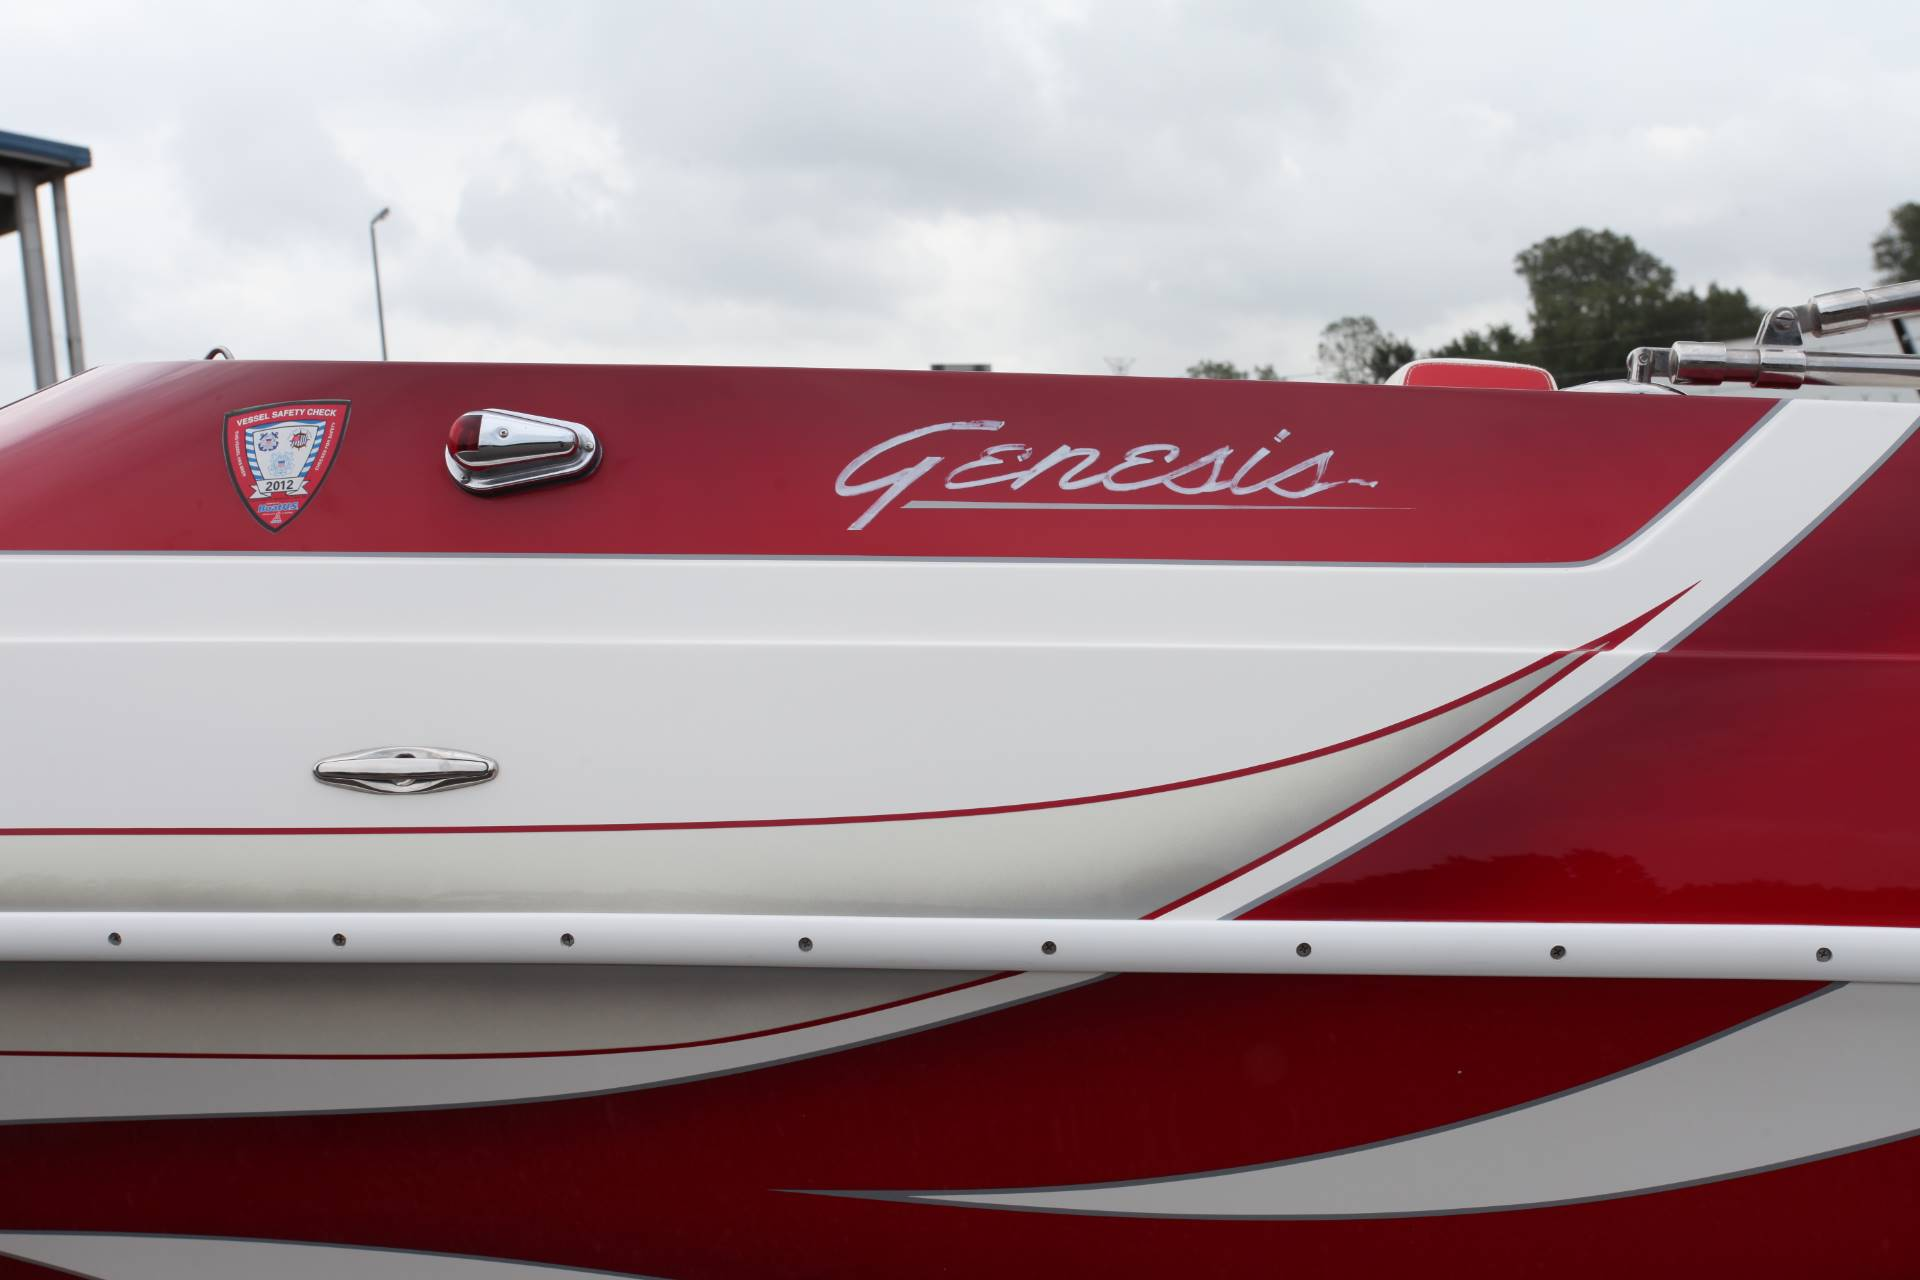 2011 Genesis Power Boats 23' Xtreme in Memphis, Tennessee - Photo 4